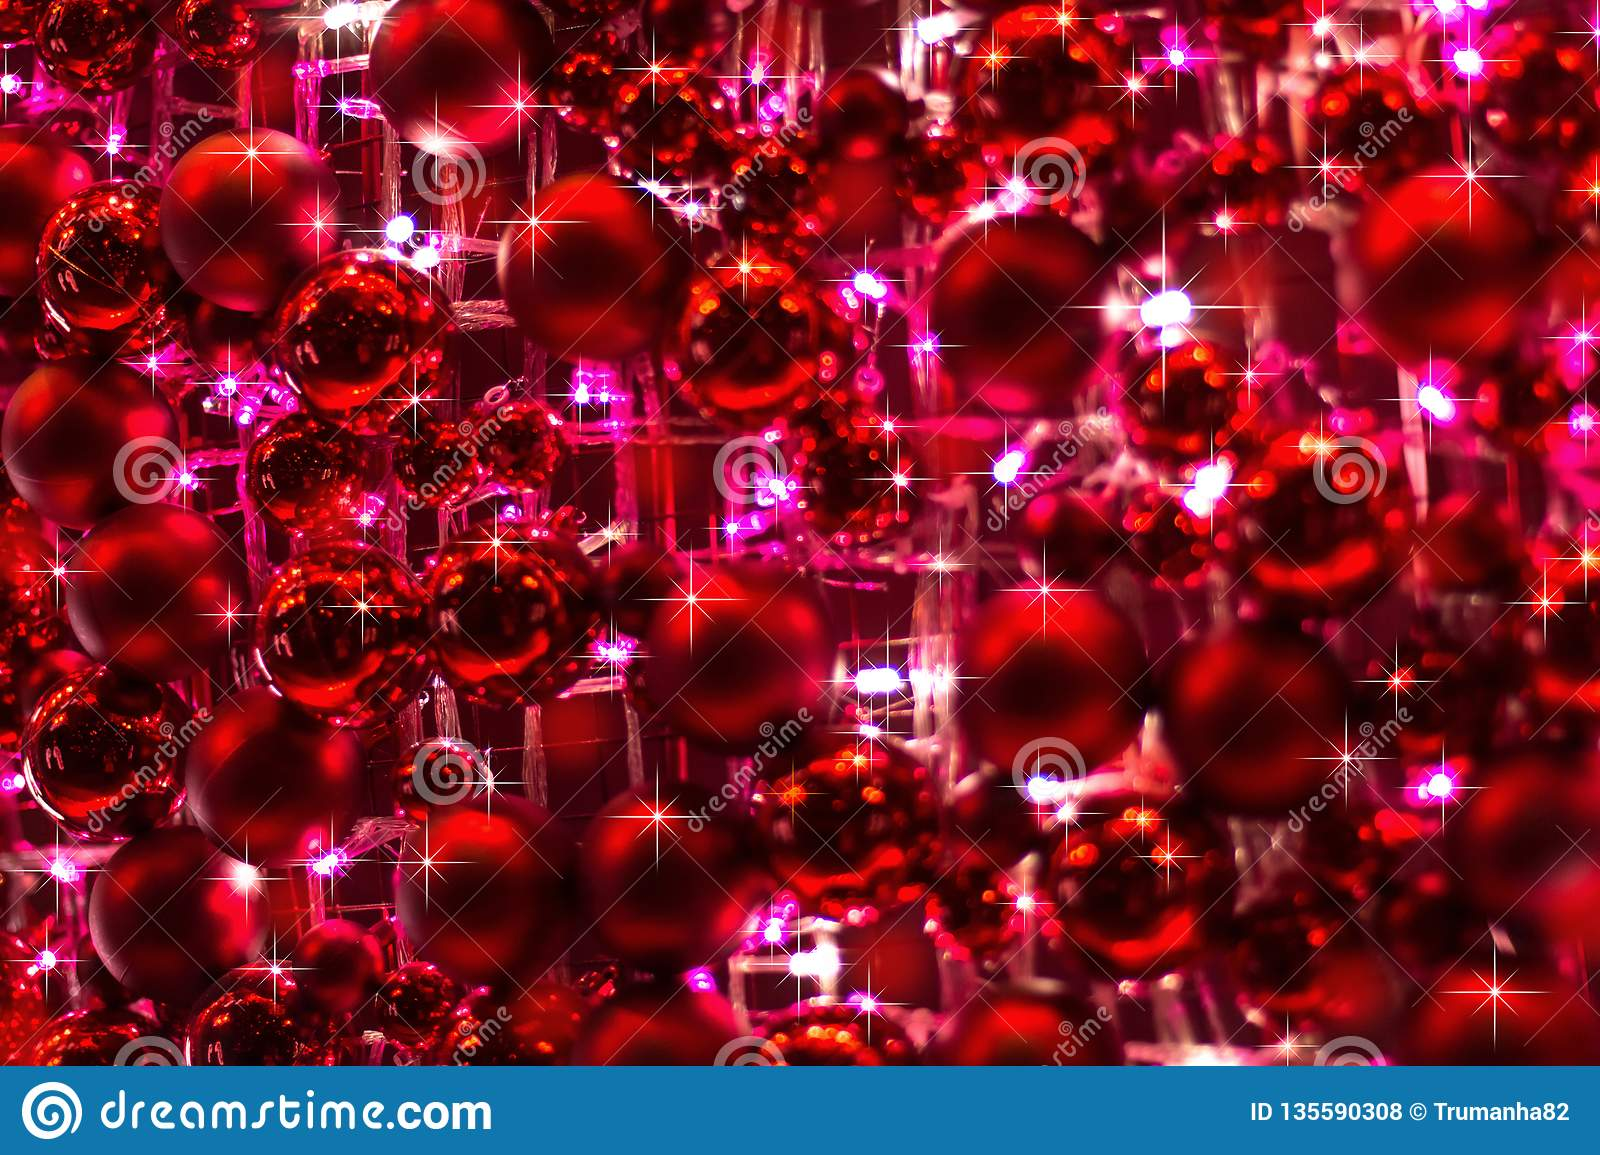 Red Ornaments and Glittery Lights of Christmas Decoration